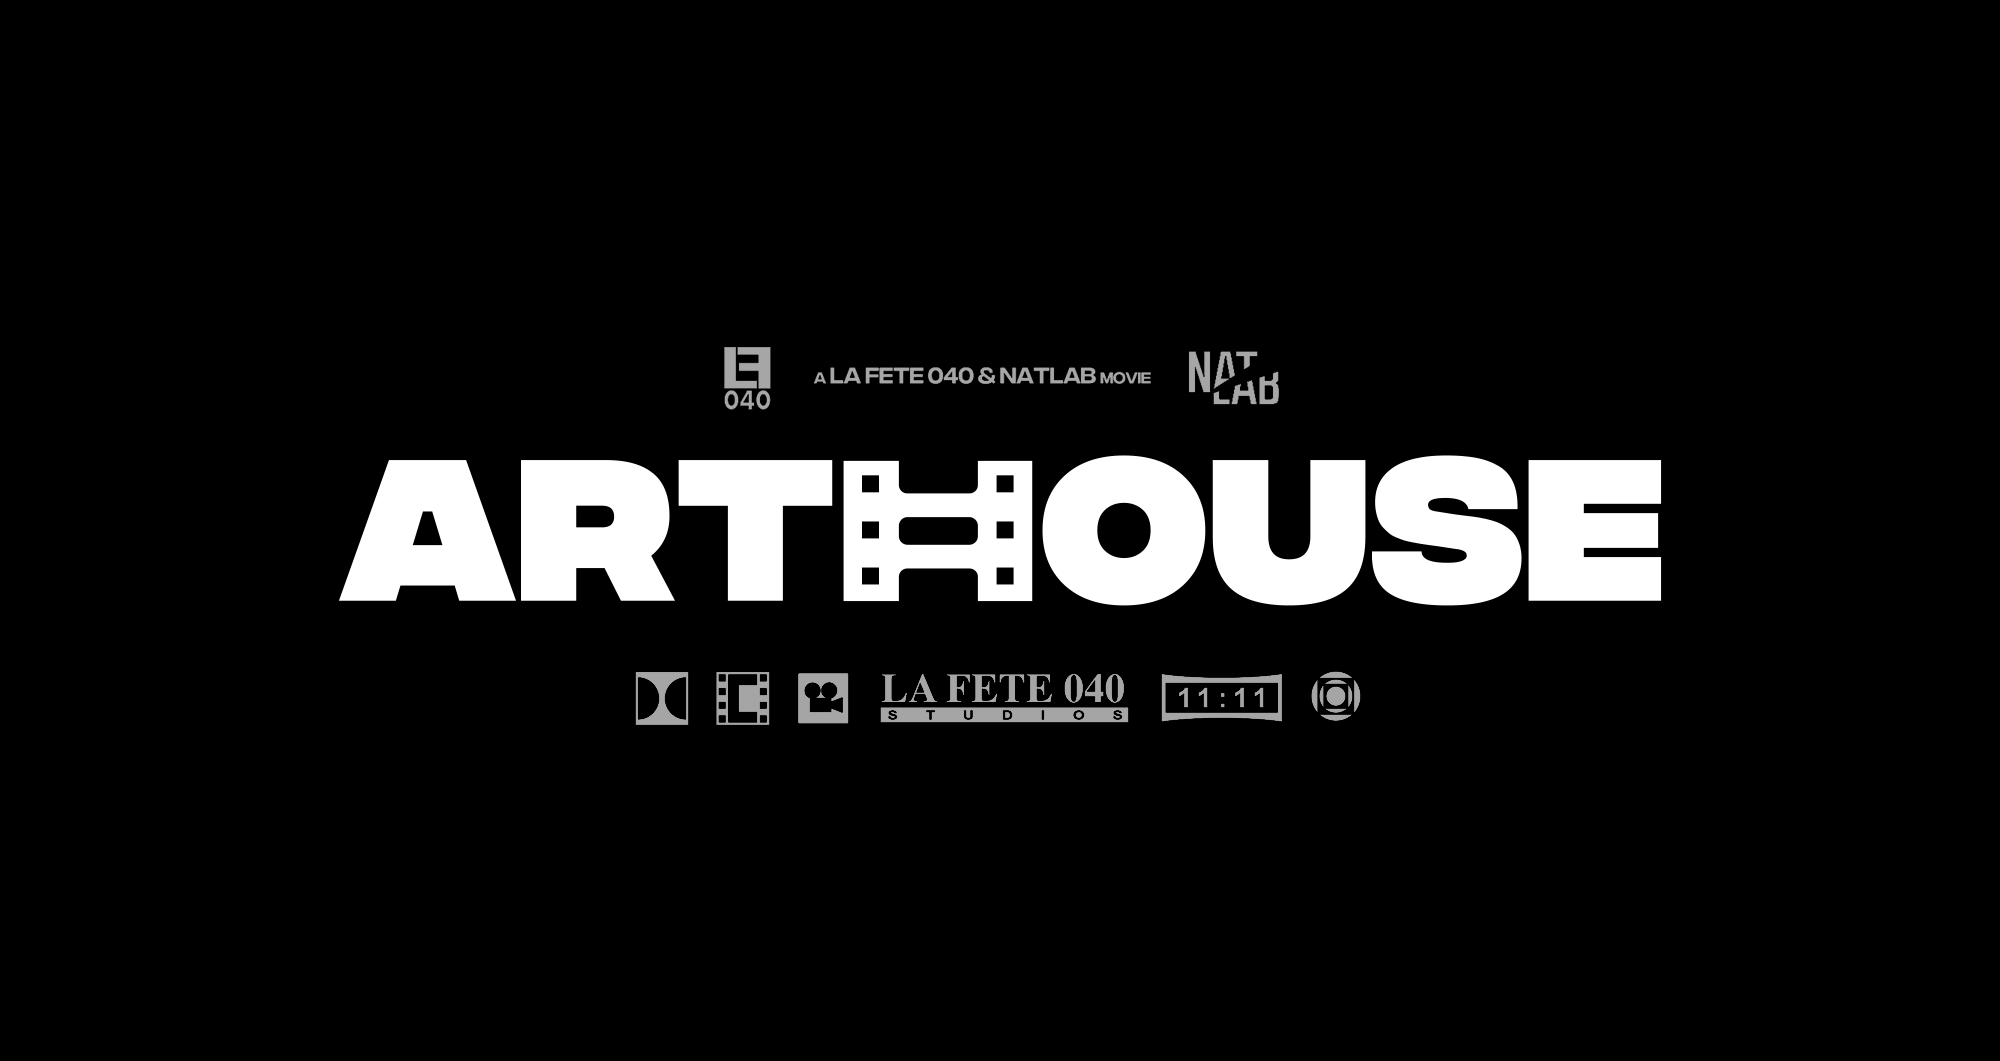 Arthouse-LOGO